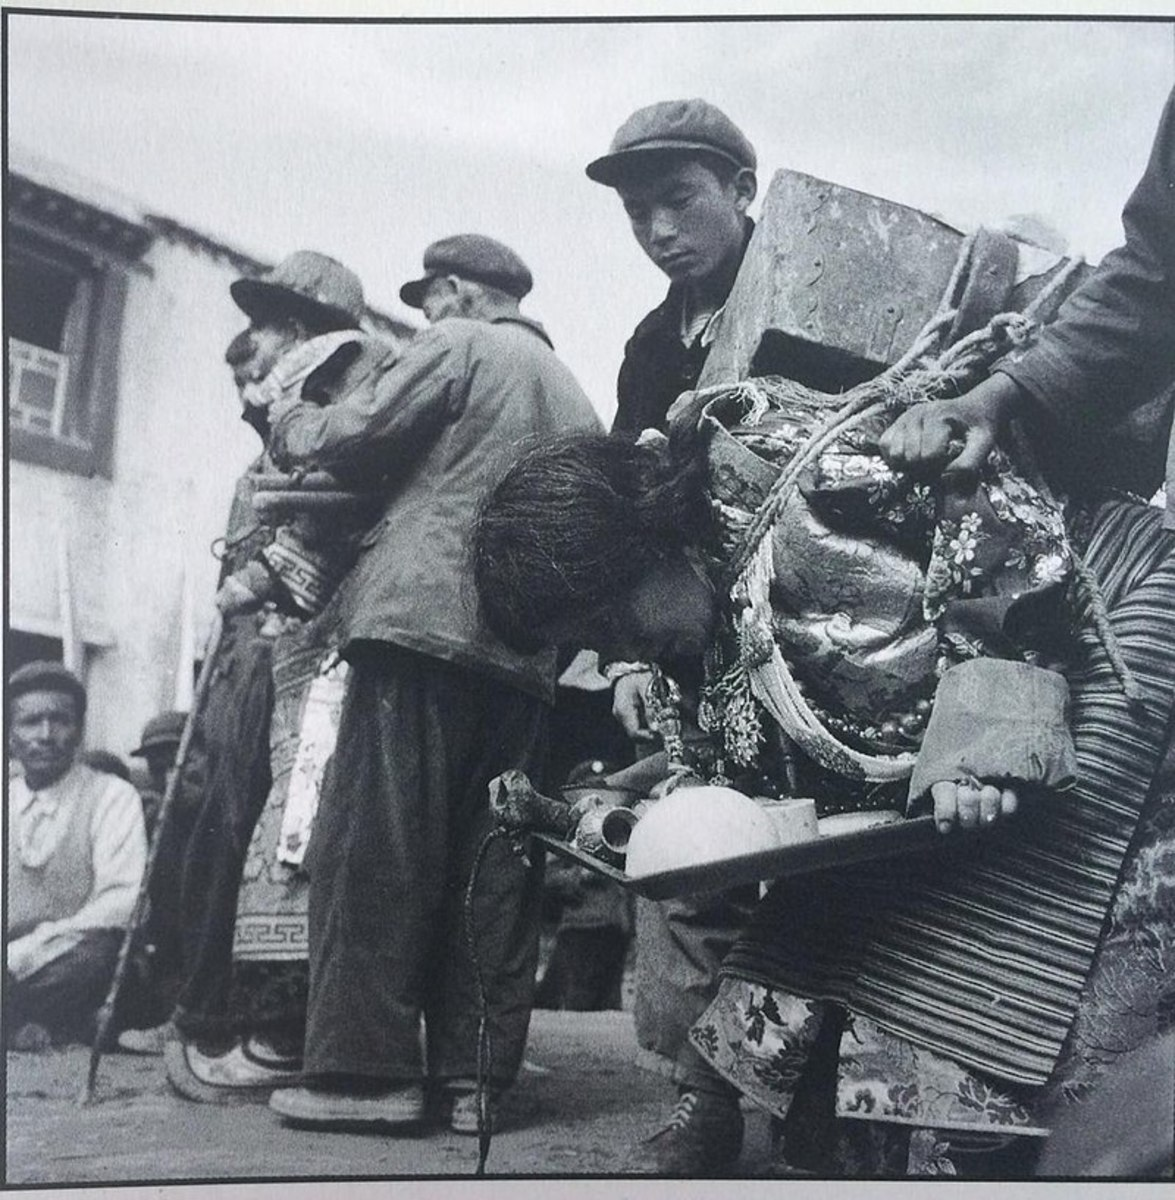 Struggle session of Sampho Tsewang Rigzin and his wife during the Cultural Revolution.